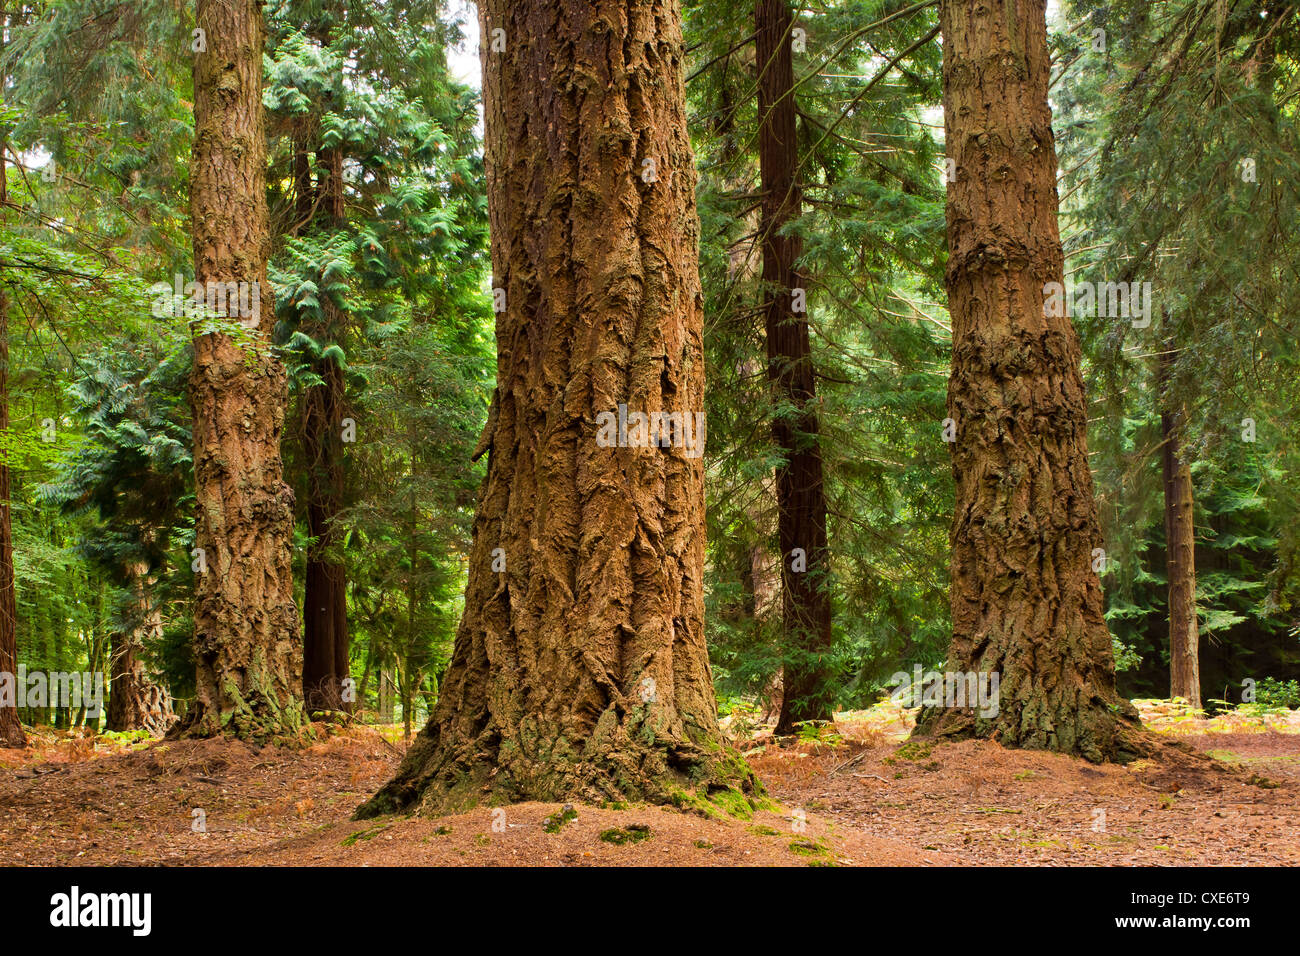 Interior of Pine Forest, New Forest, Hampshire, England, UK Stock Photo